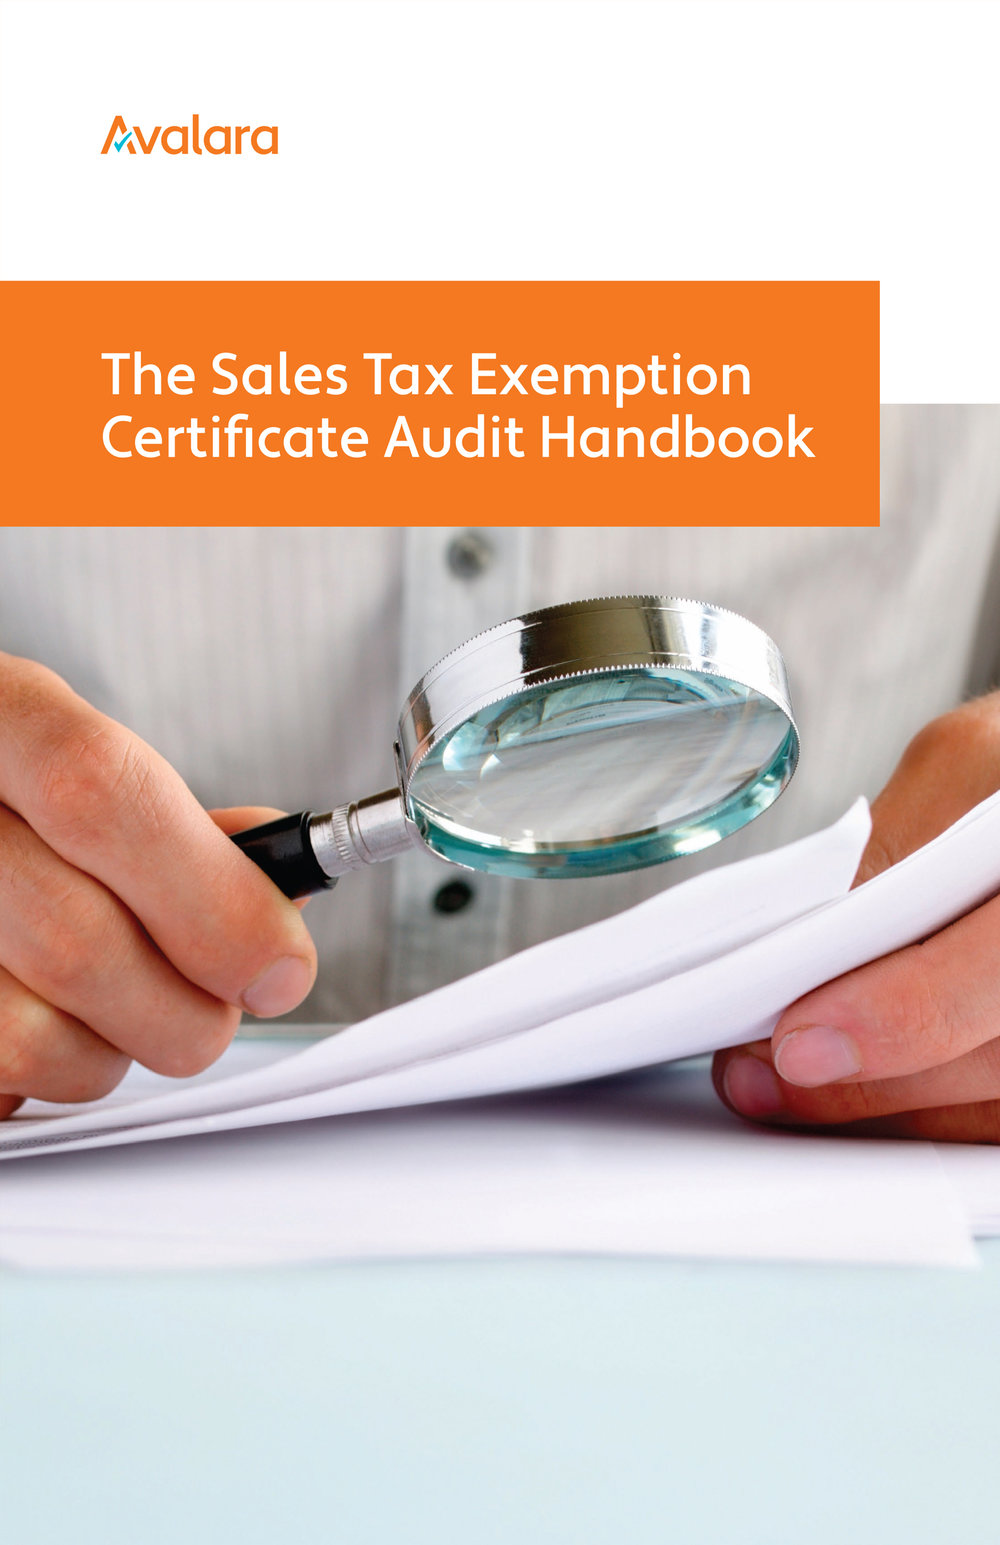 AVALARA SALES TAX EXEMPTION CERTIFICATE AUDIT HANDBOOK -